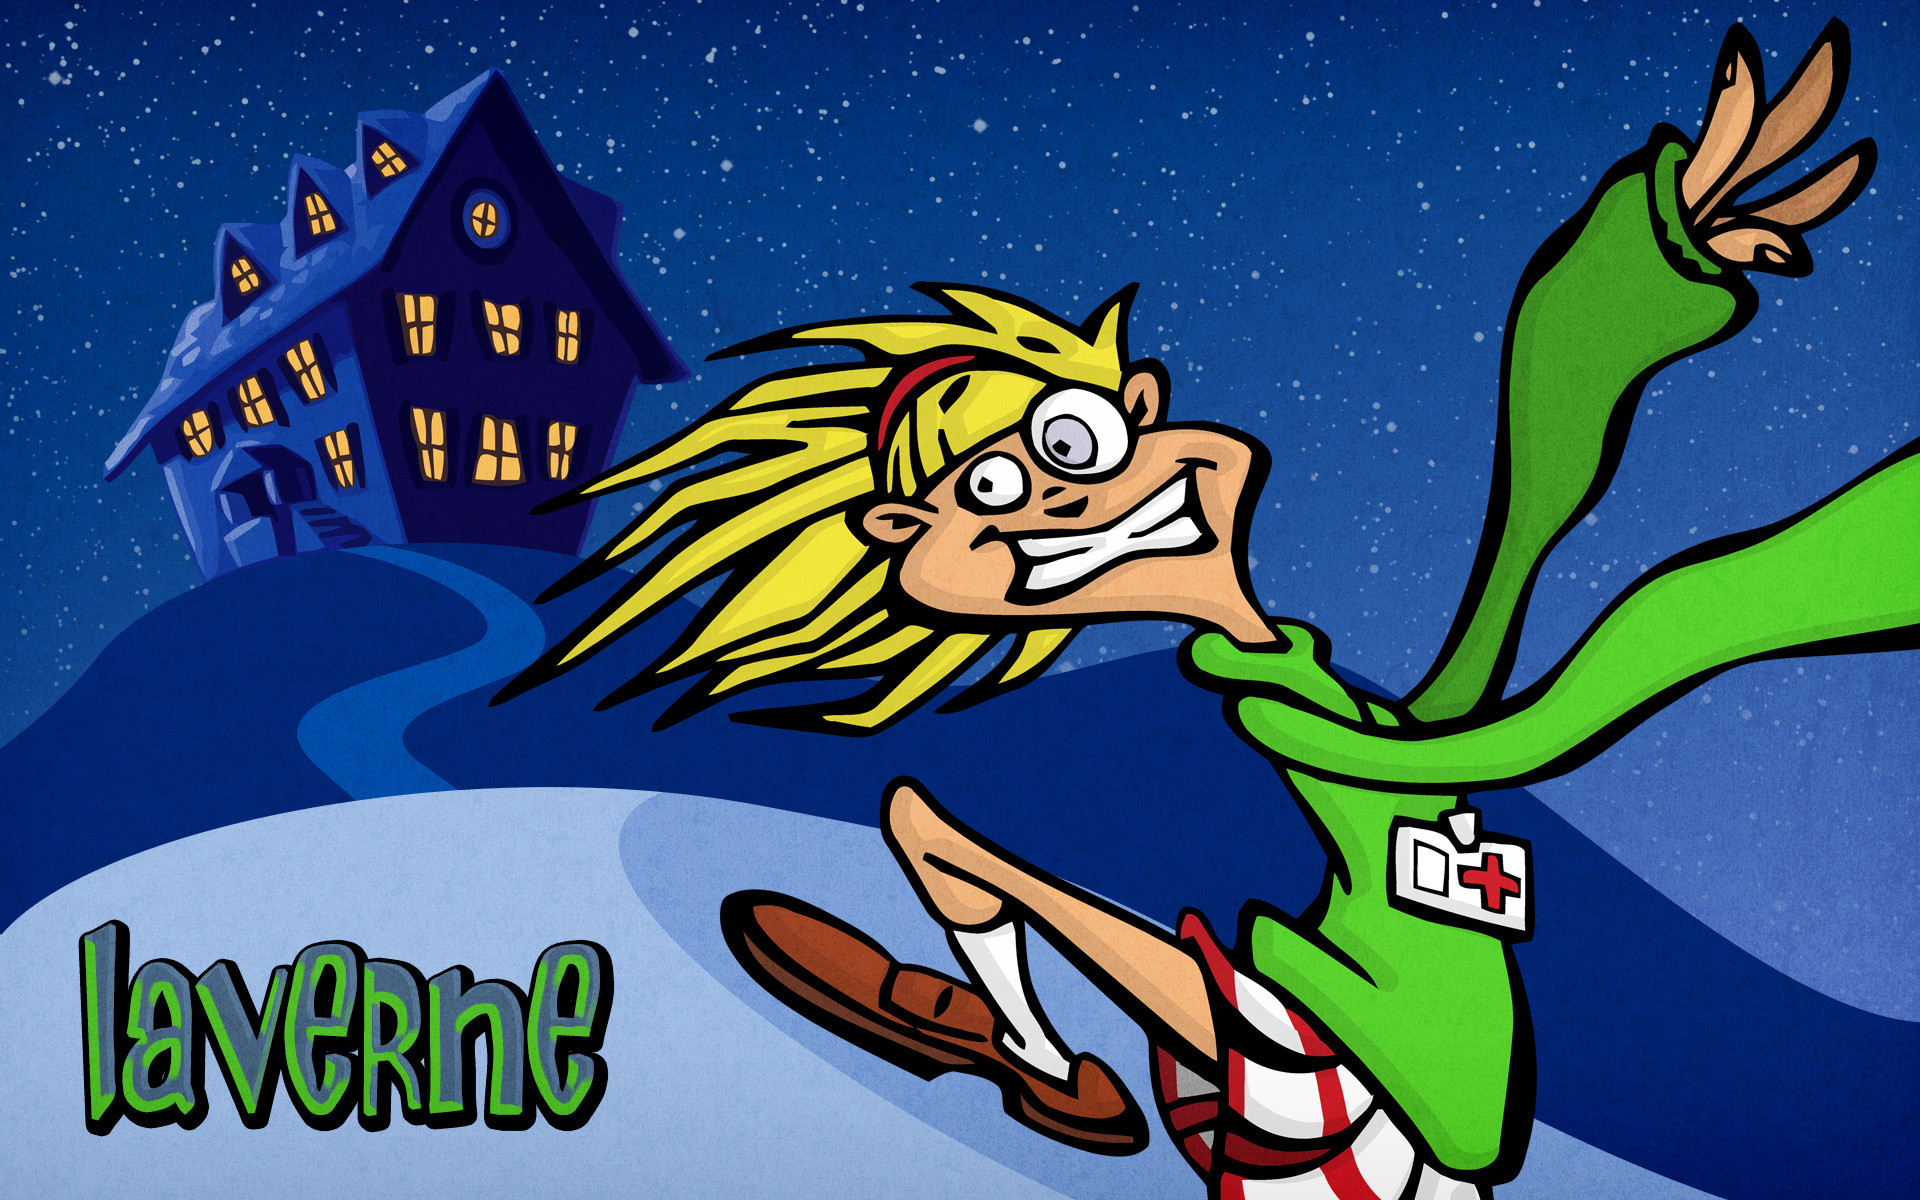 1920x1200 Day of the Tentacle images Desktop Wallpaper: Laverne HD wallpaper and background  photos